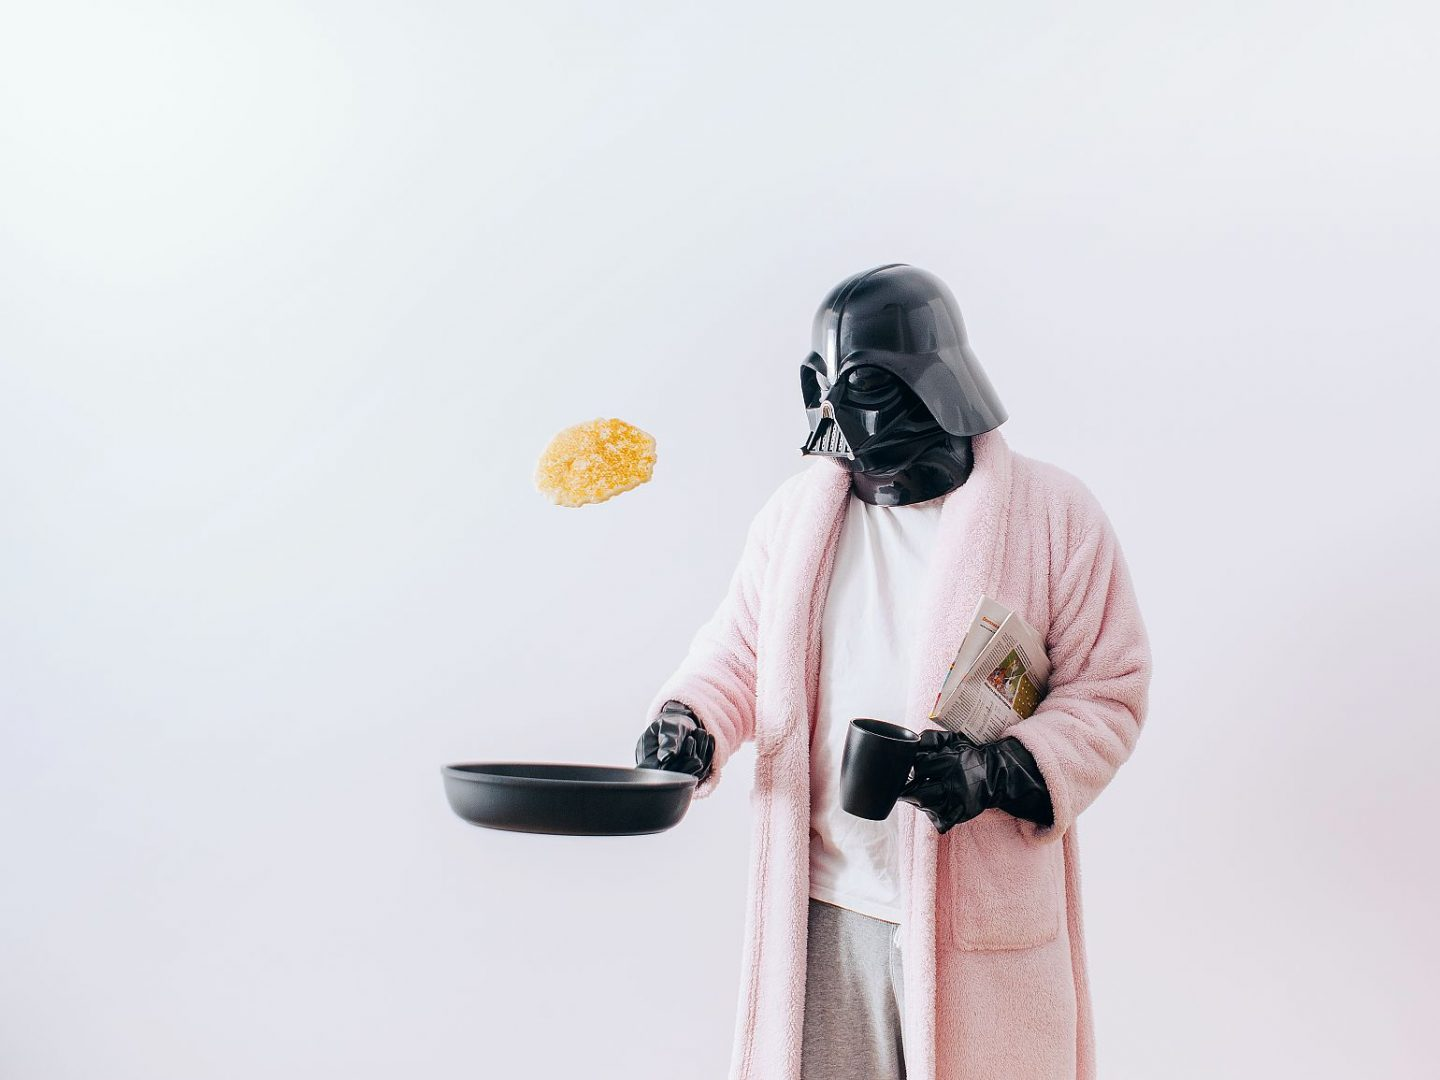 The Daily Life of Darth Vader, il progetto di Pawel Kadysz